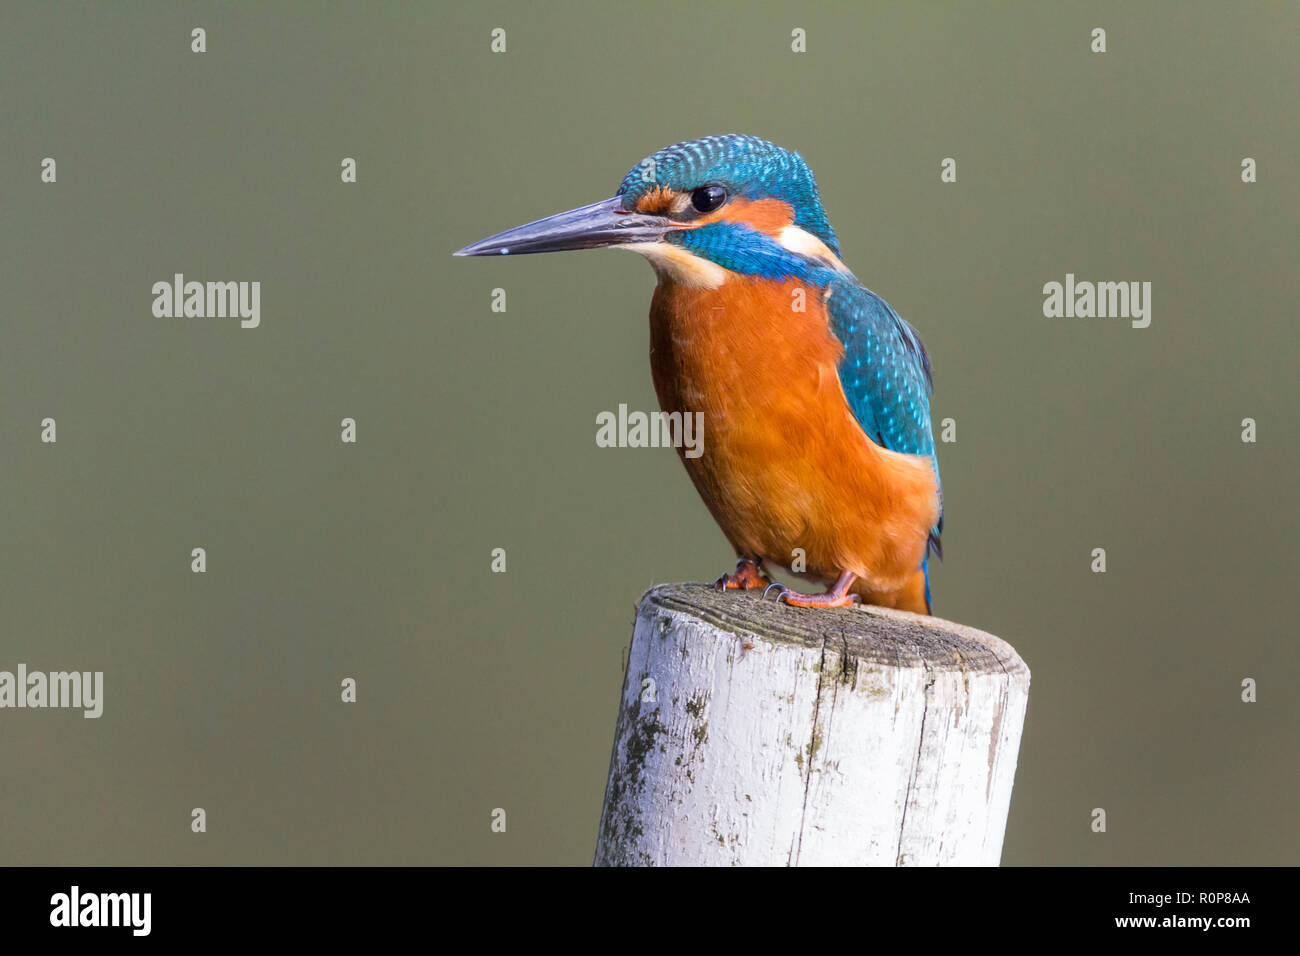 Kingfisher (Alcedo atthis) close up perché sur poster juste en face de la masquer. Grand poignard comme black bill (mâle) et bleu électrique, plumage orange. Photo Stock